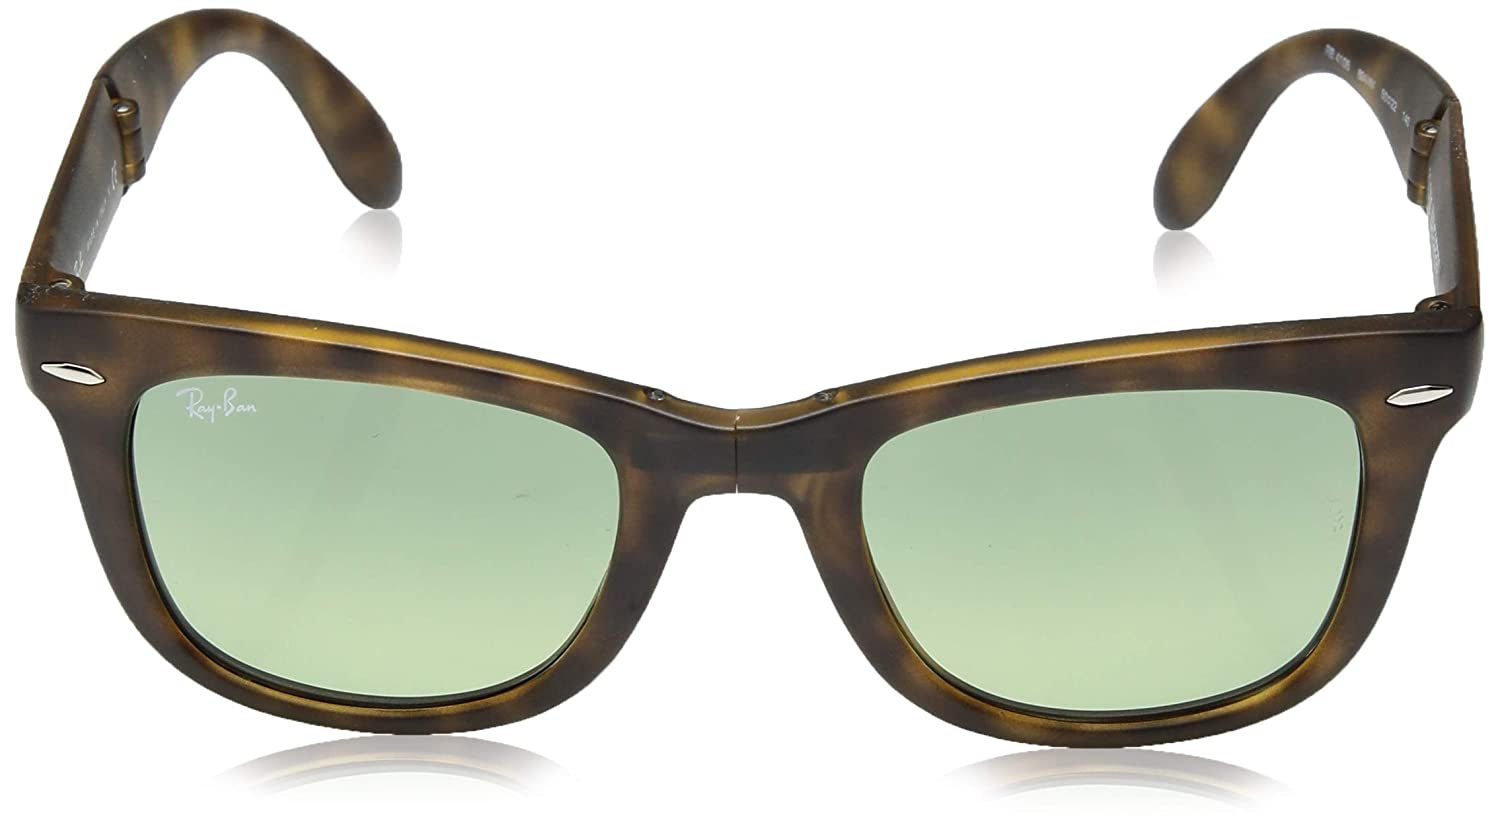 7d24027784882 Ray-Ban RB4105 894 4M Matte Havana Folding Wayfarer Sunglasses Lens  Category 2  Amazon.co.uk  Clothing